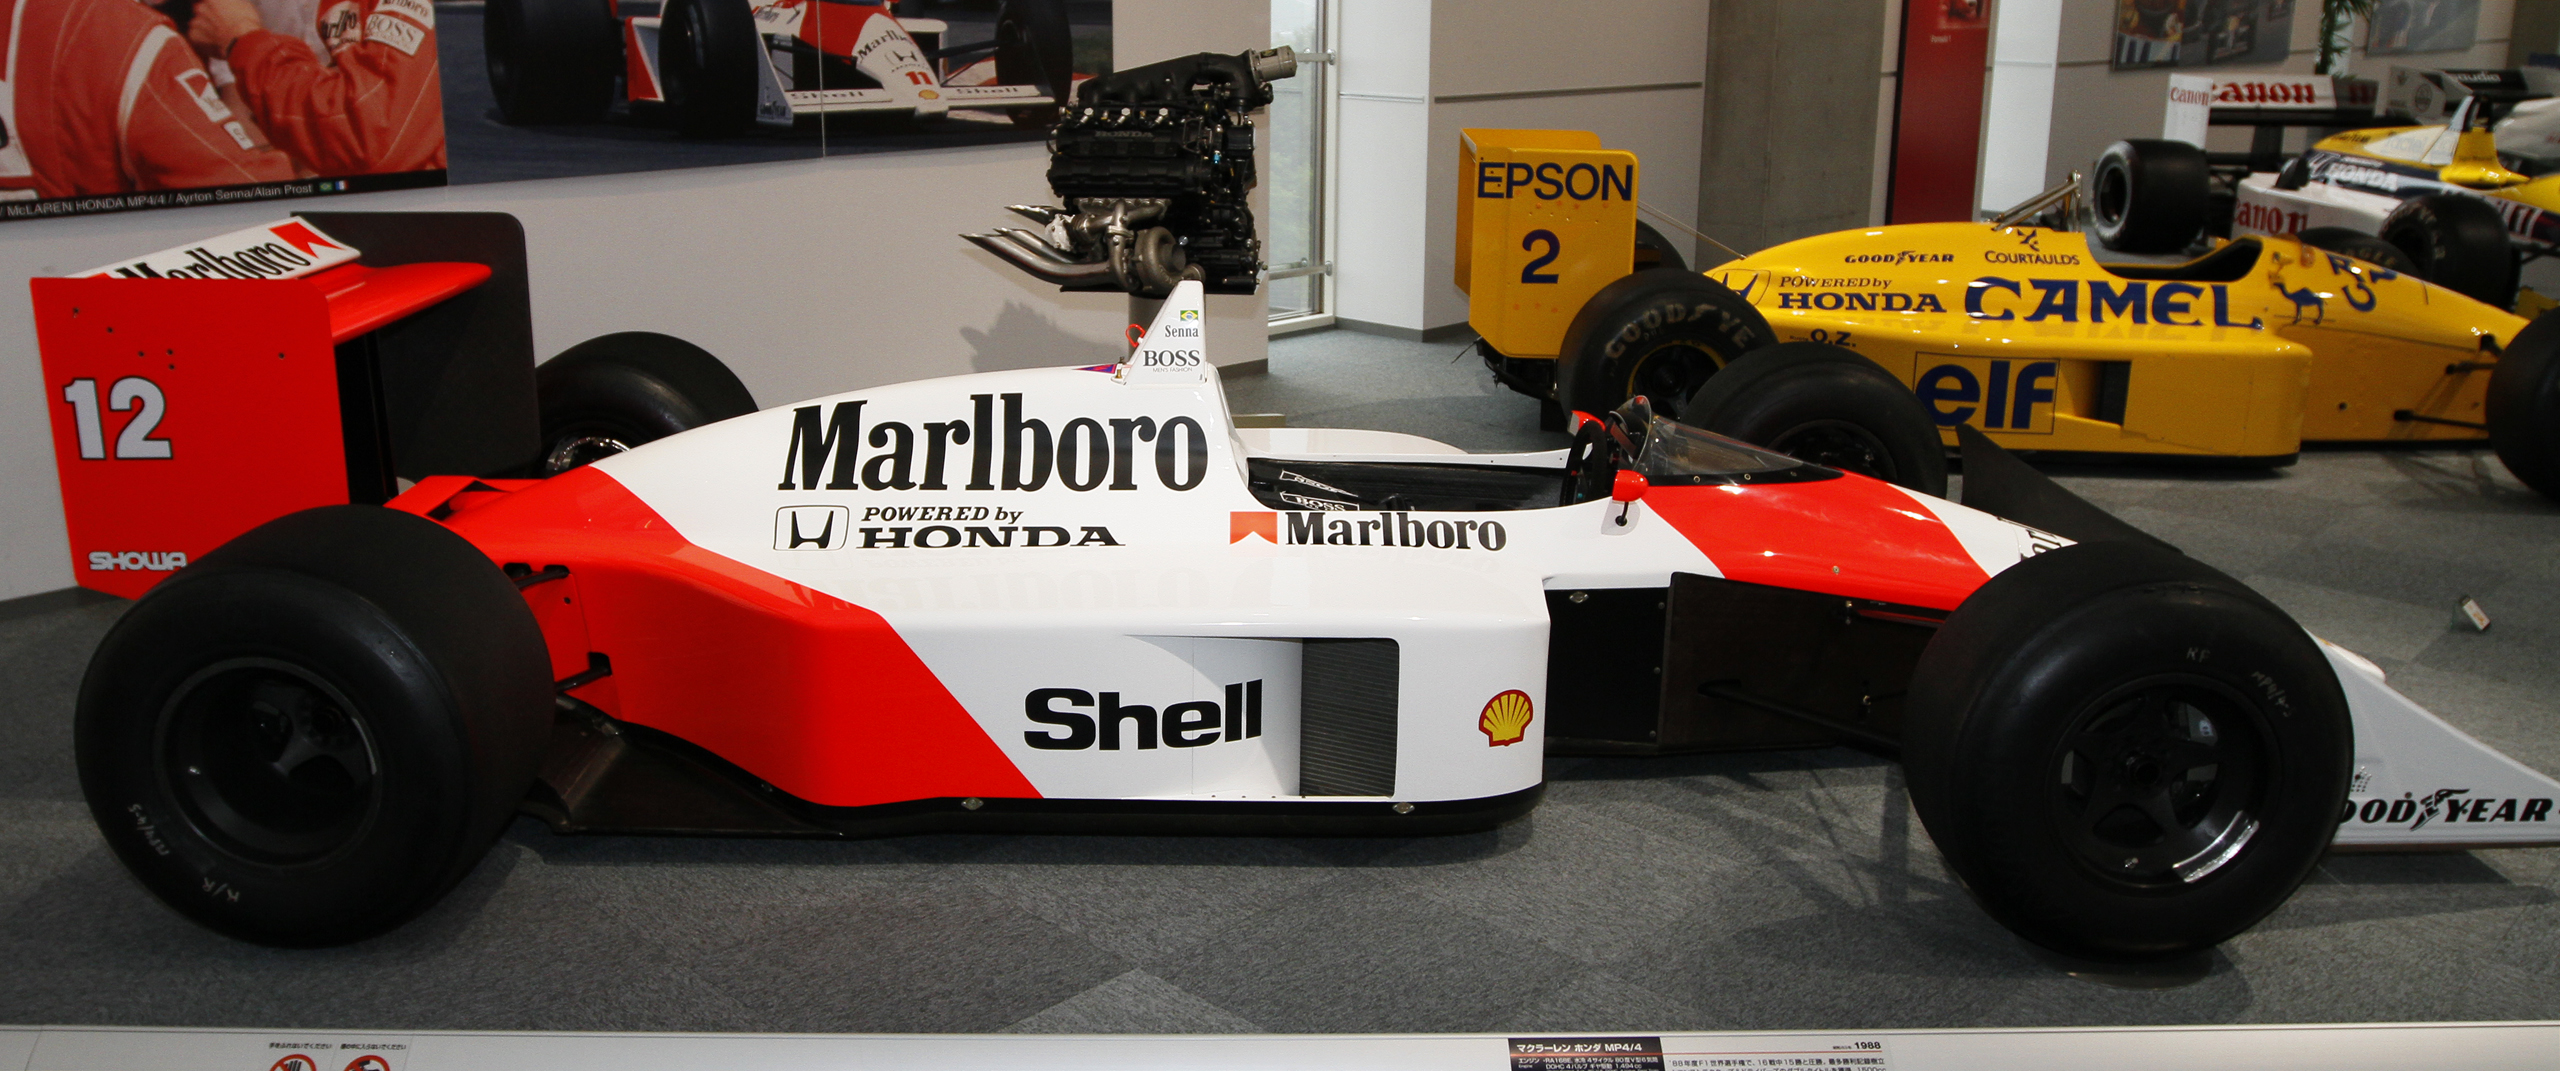 file:mclaren mp4-4 side view honda collection hall - wikimedia